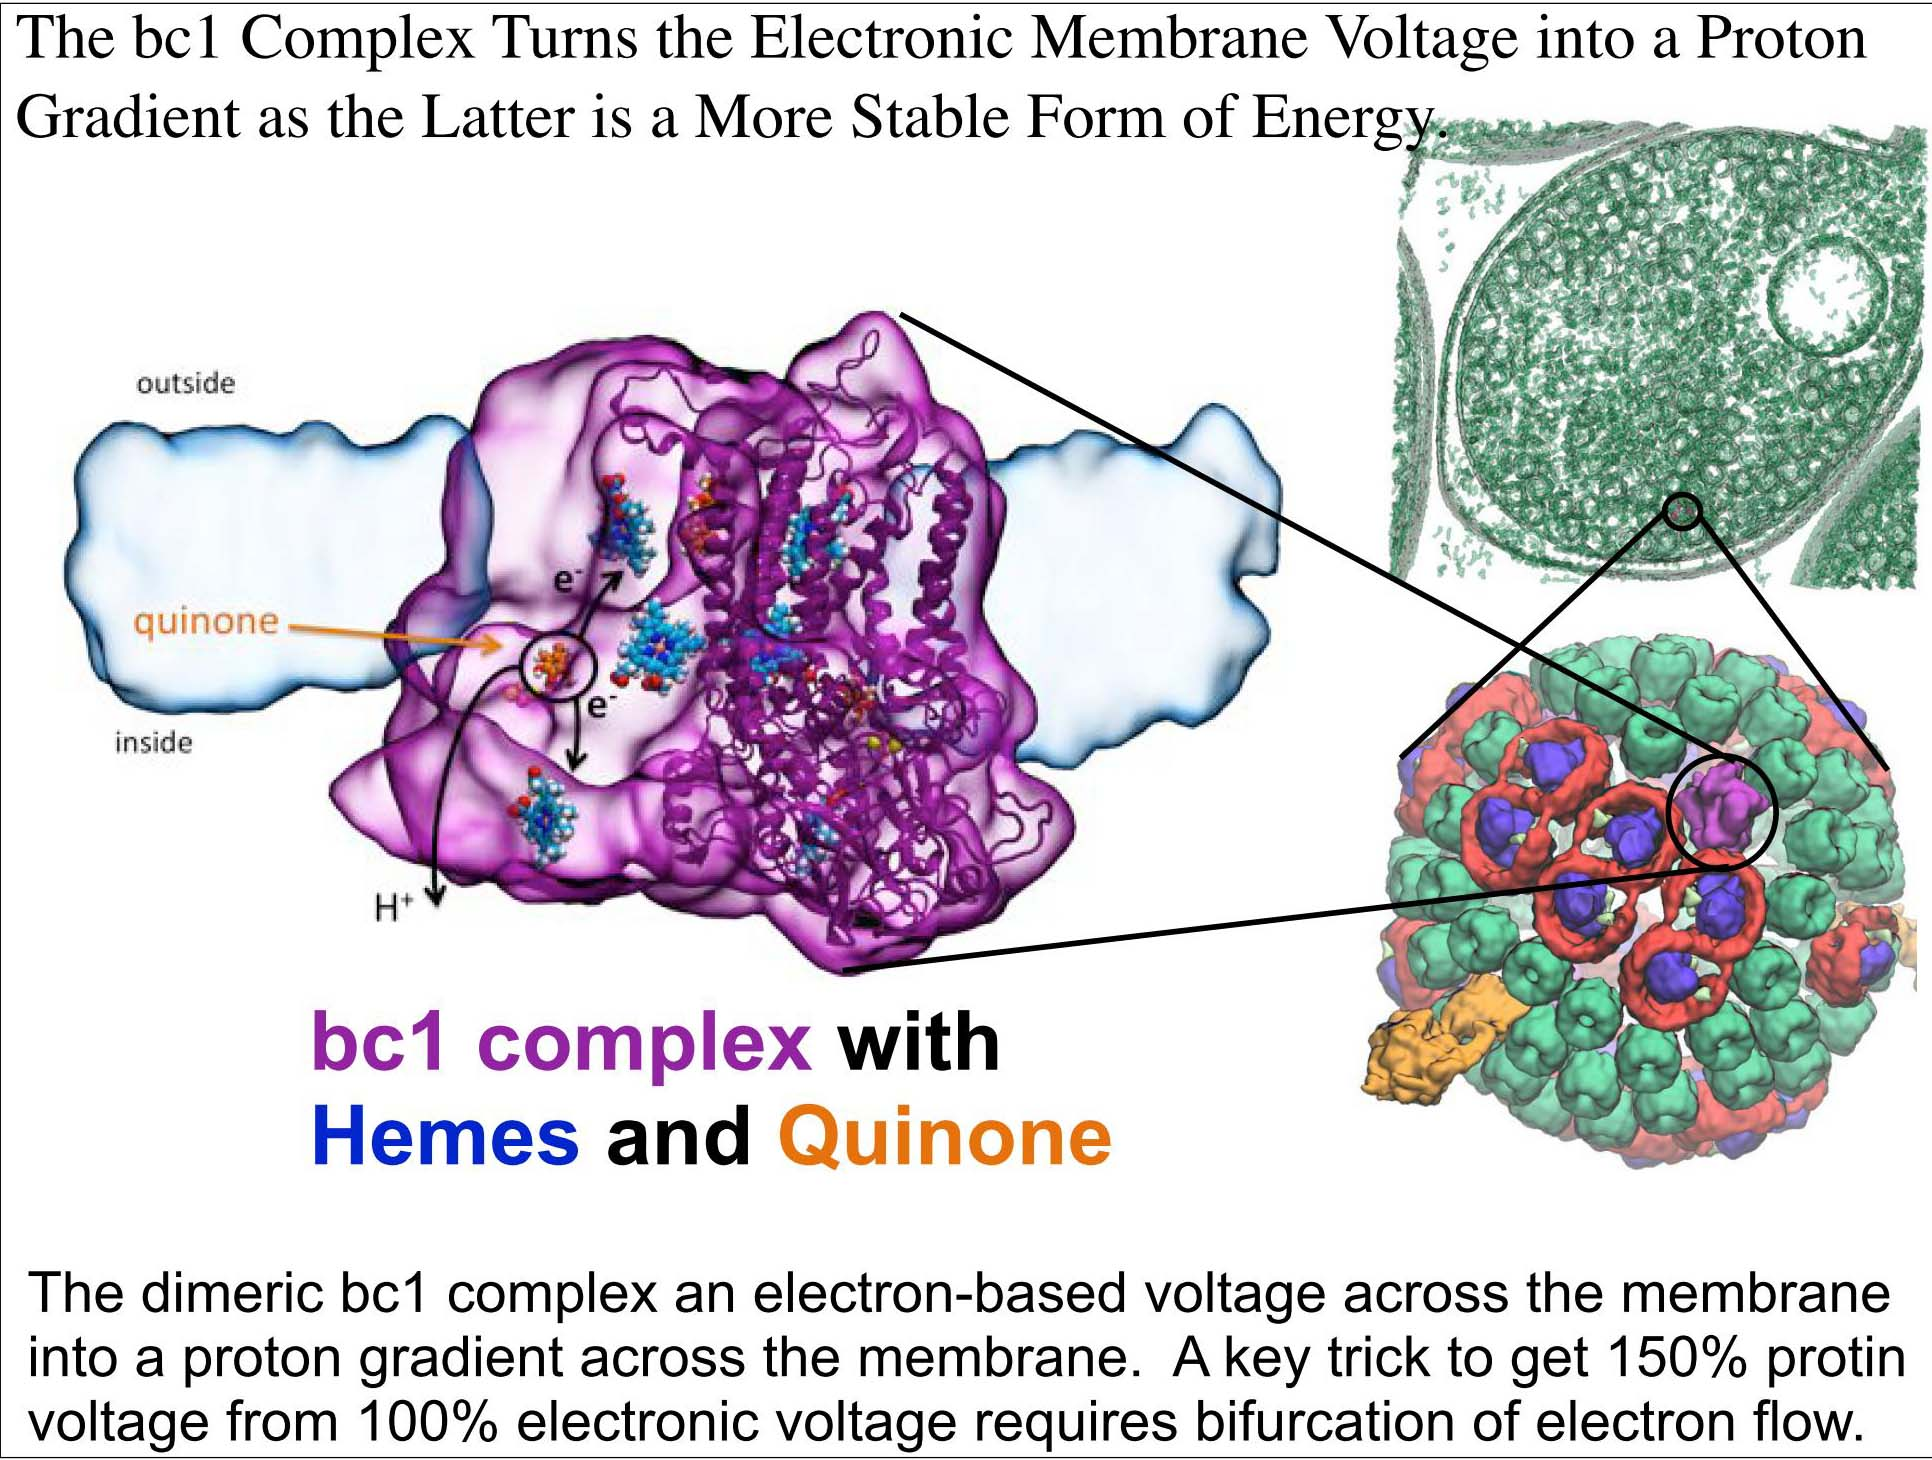 The bc1 Complex Turns the Electronic Membrane Voltage into a Proton Gradient as the Latter is a More Stable Form of Energy